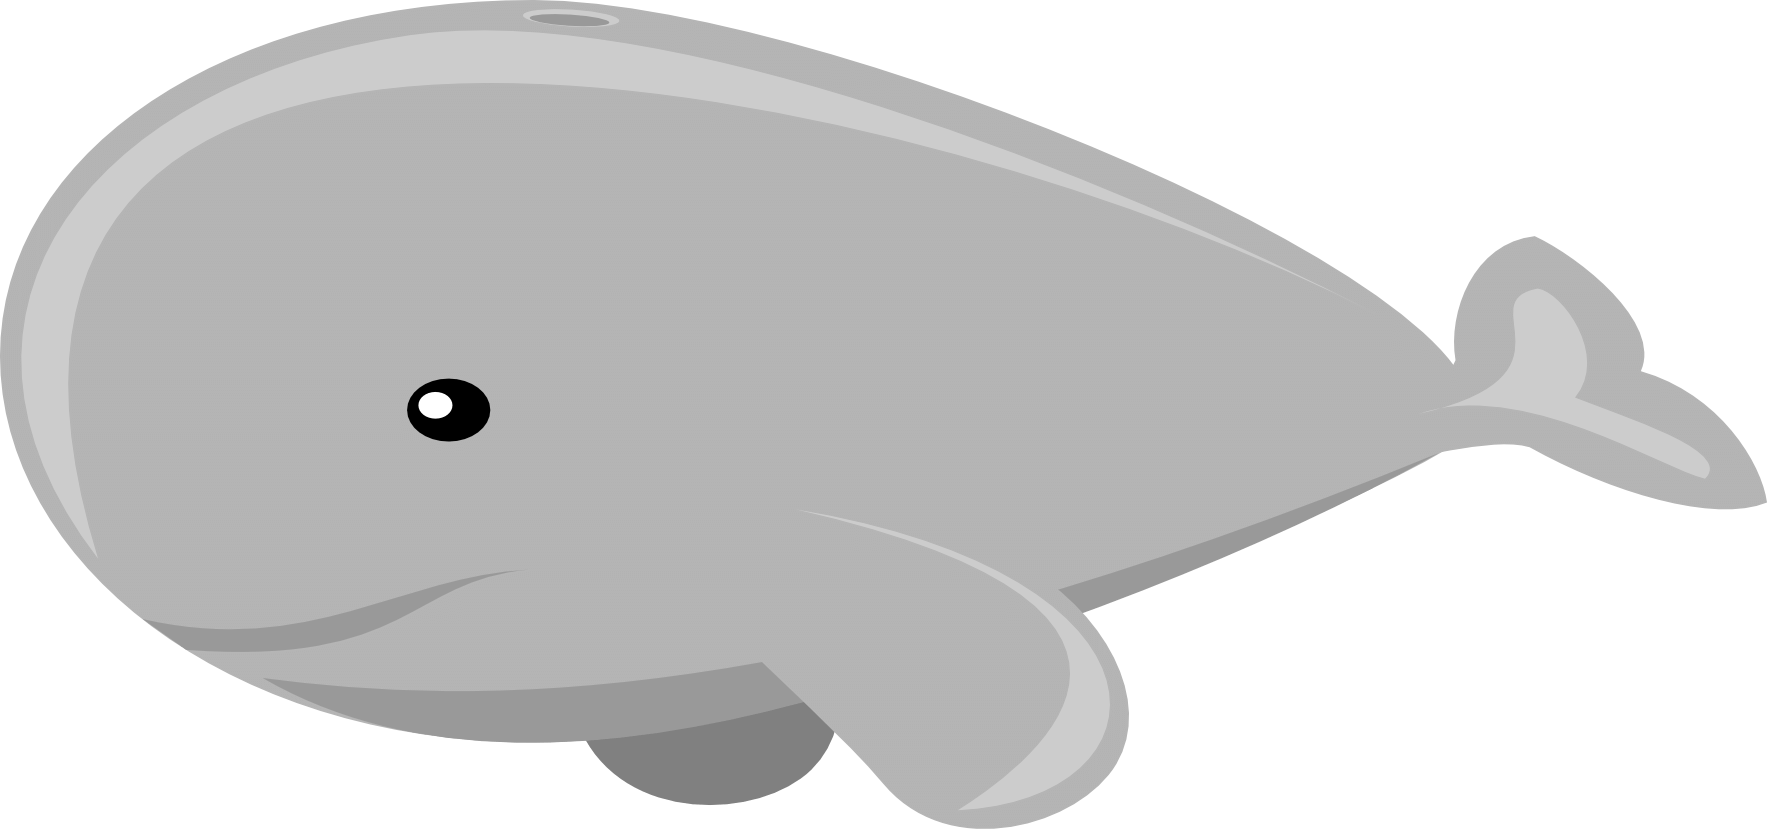 clip art download Manatee clipart dugong. Cute cartoon free on